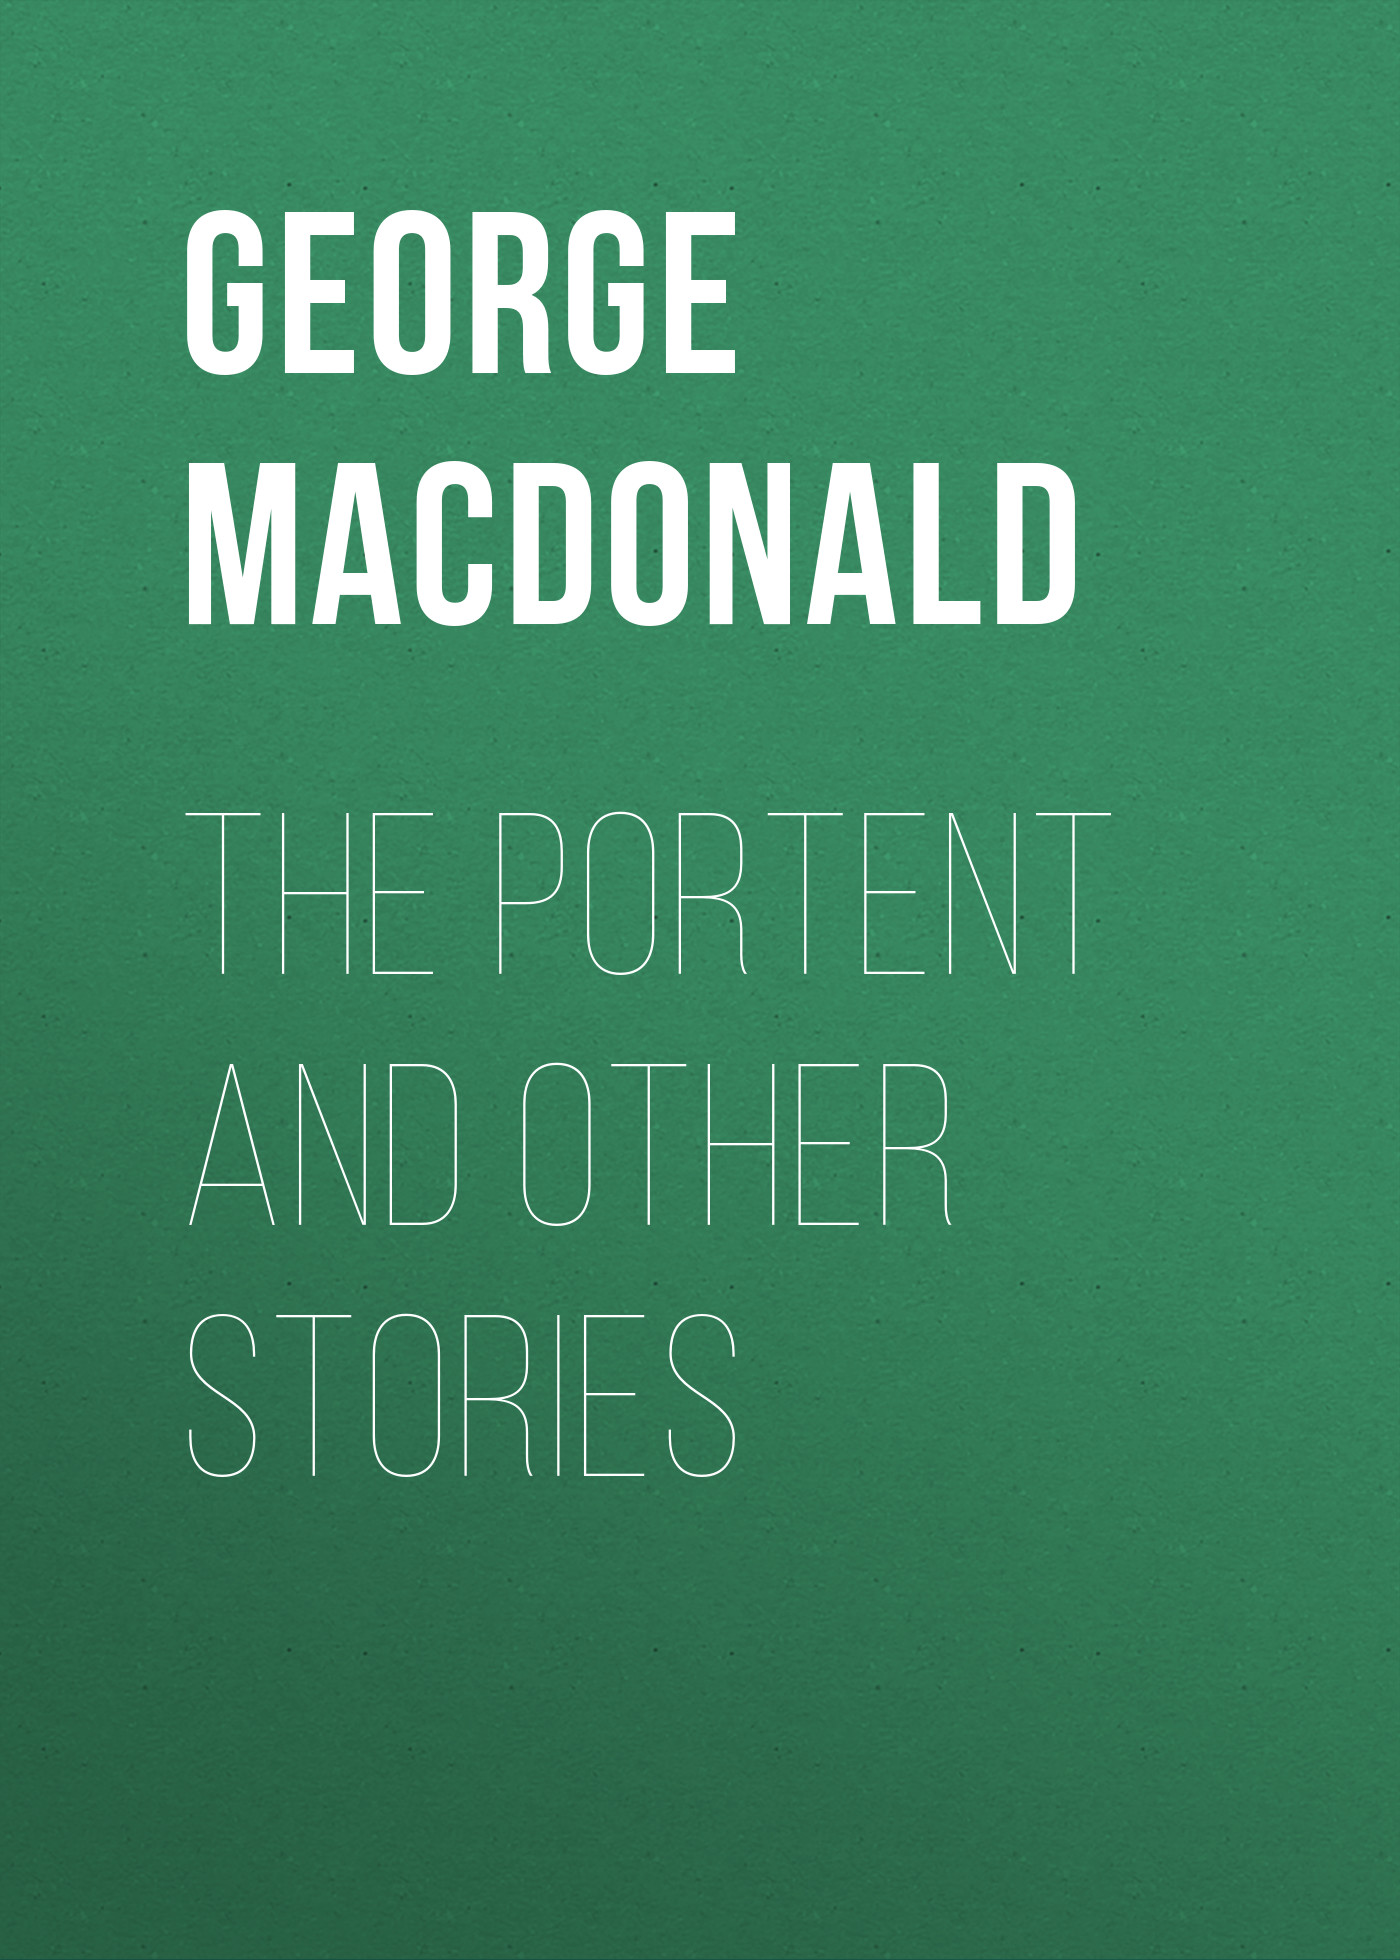 George MacDonald The Portent and Other Stories